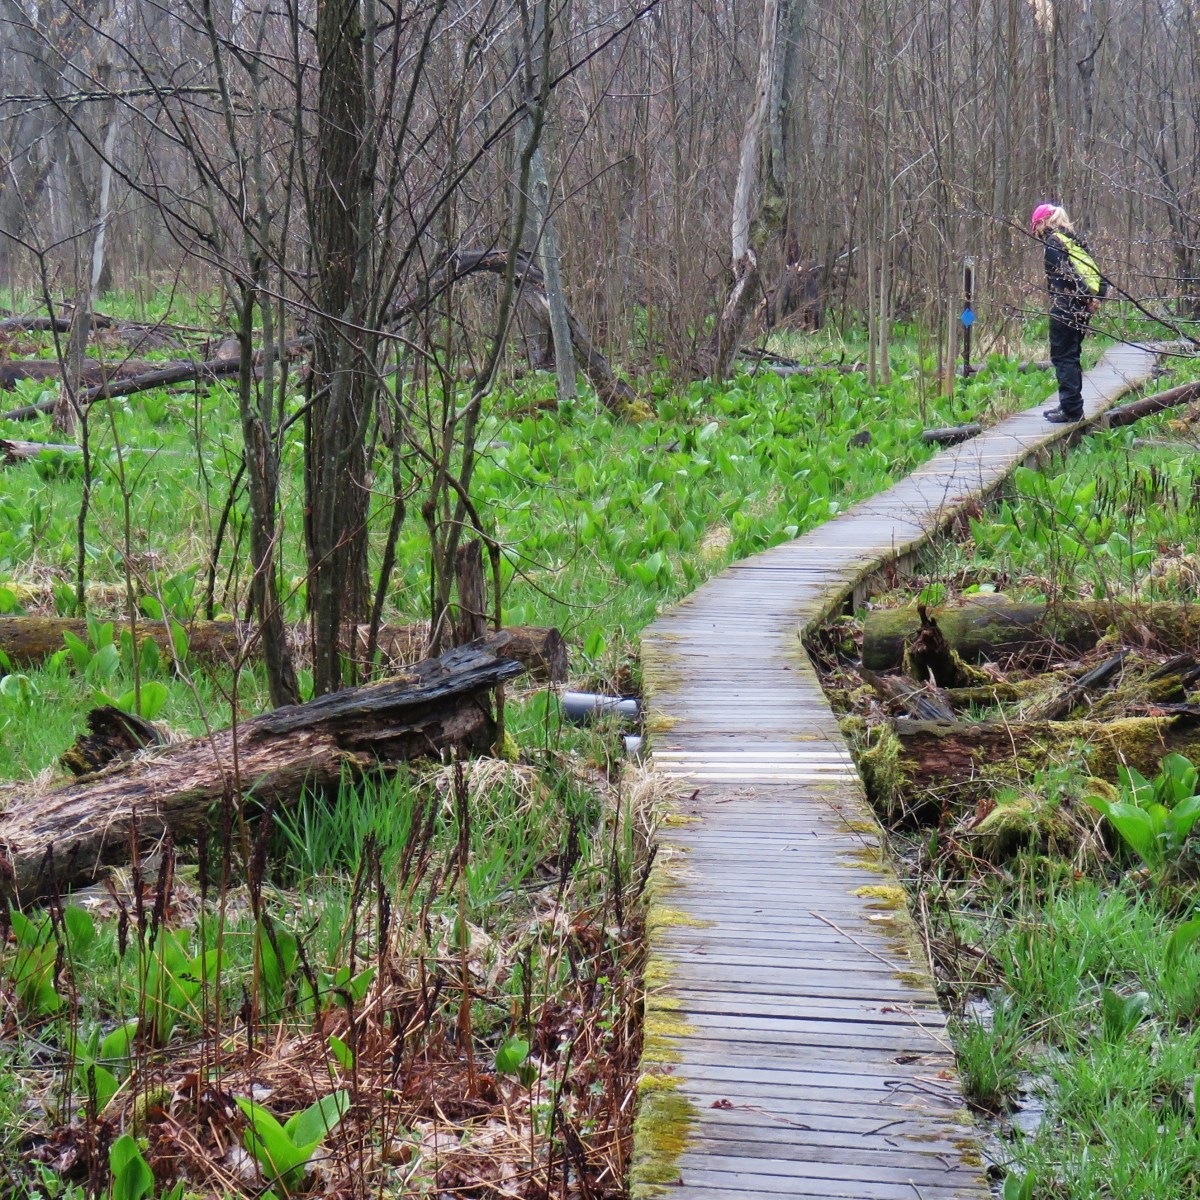 A boardwalk intersects carpets of skunk cabbage in a swamp. A woman stands on the boardwalk in the distance looking down.